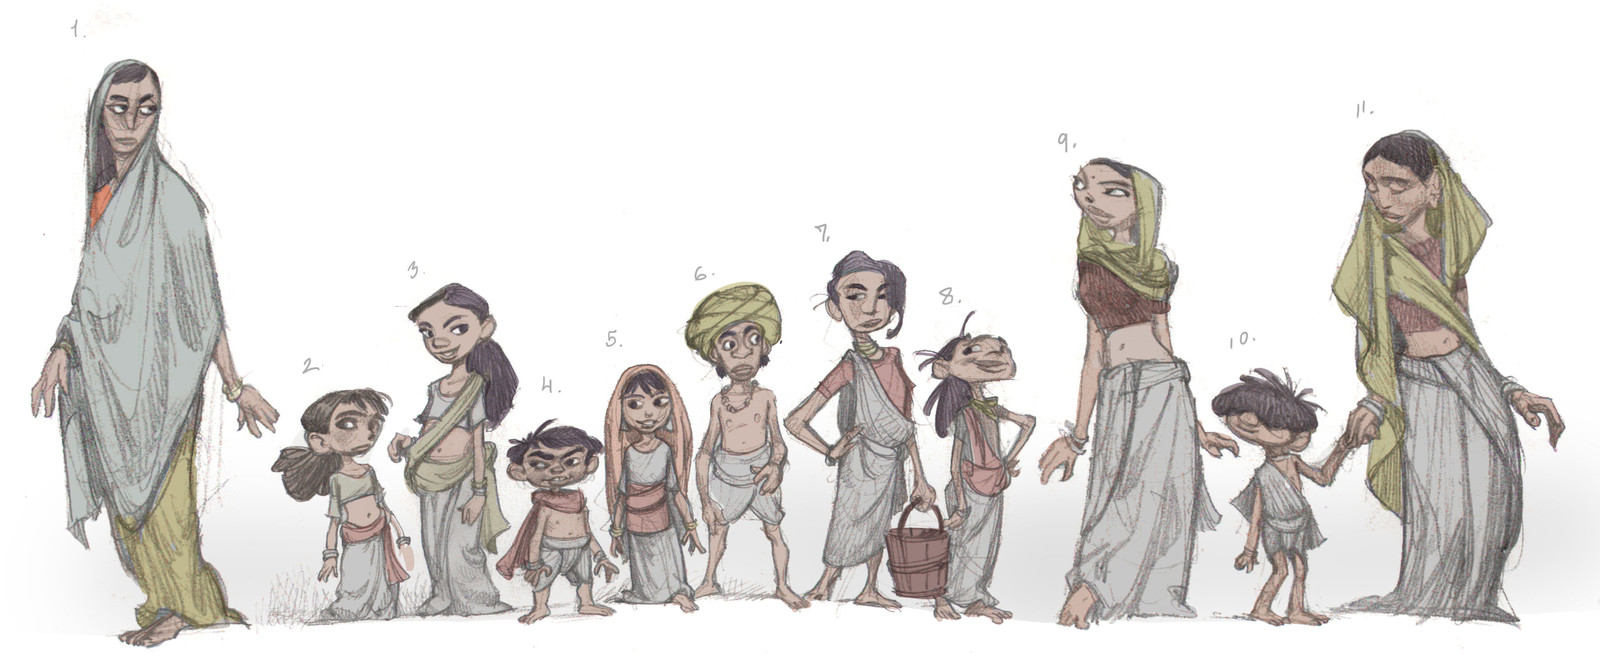 Character Design process sketches for a canceled animated film project